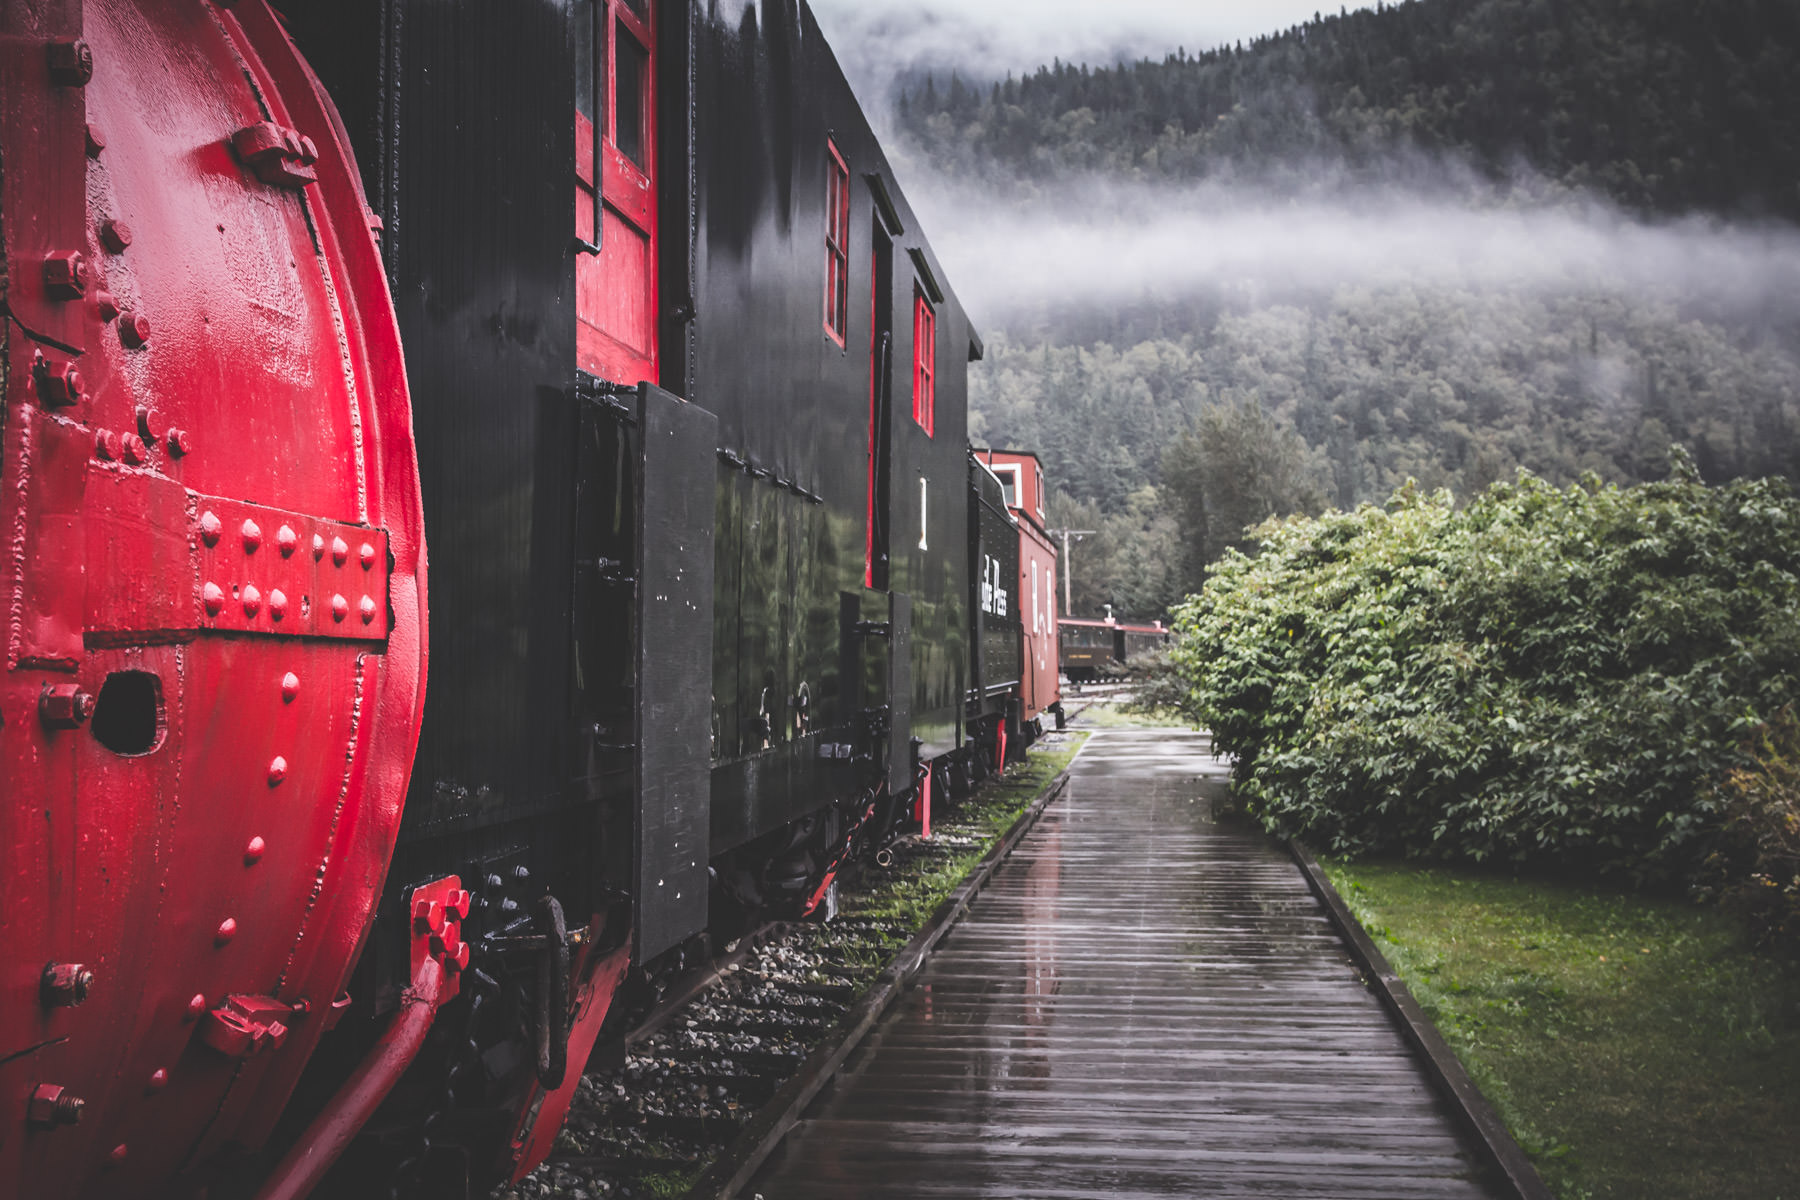 Railcars of the White Pass & Yukon Route Railway on a wet, misty morning in Skagway, Alaska.